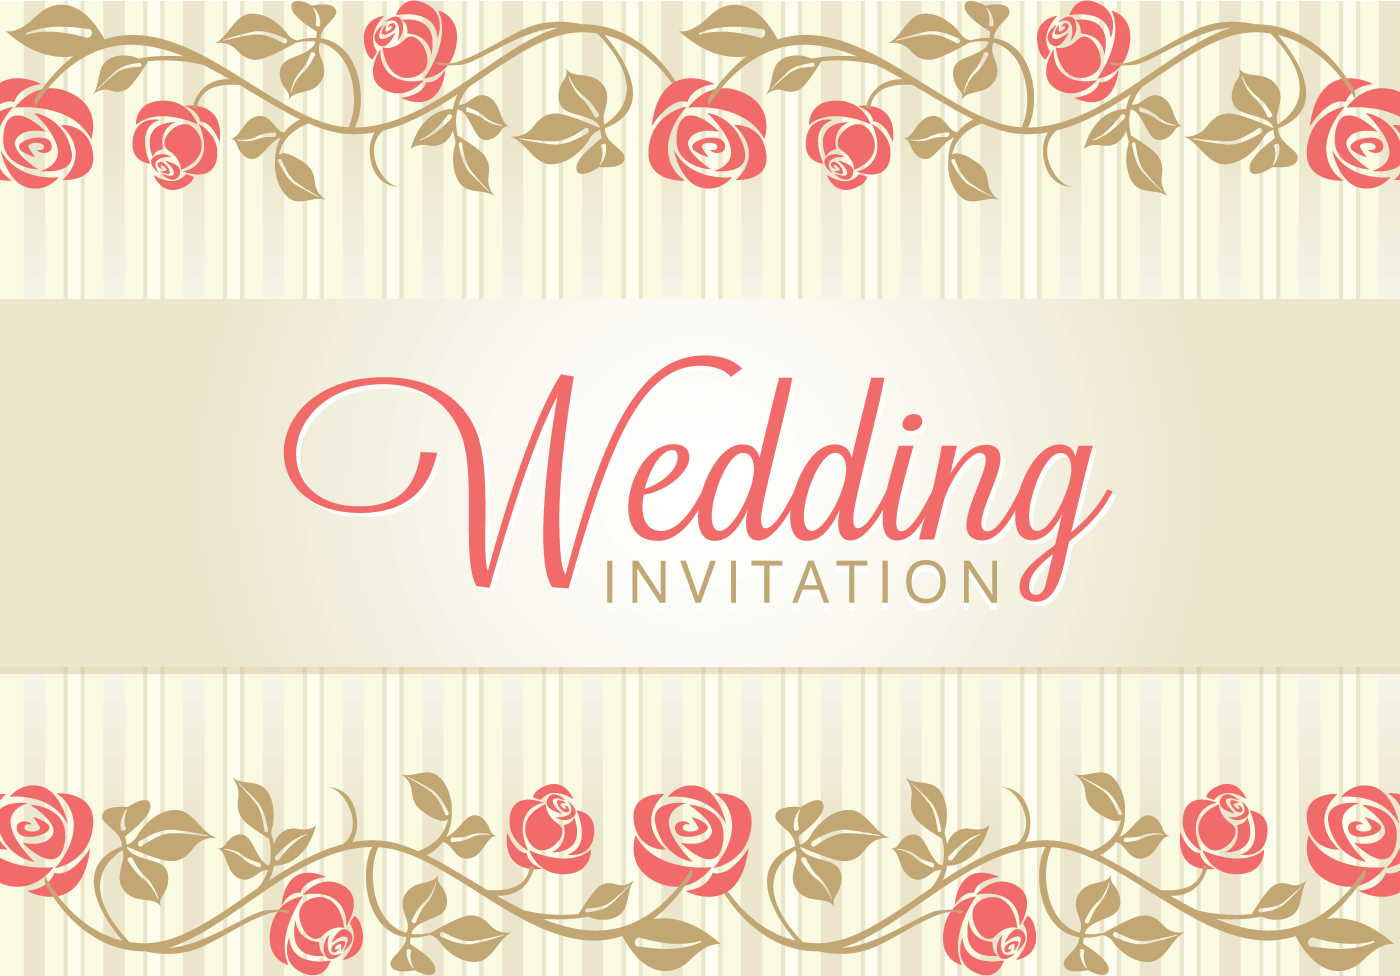 wedding invite background images - 28 images - invitation wedding ...